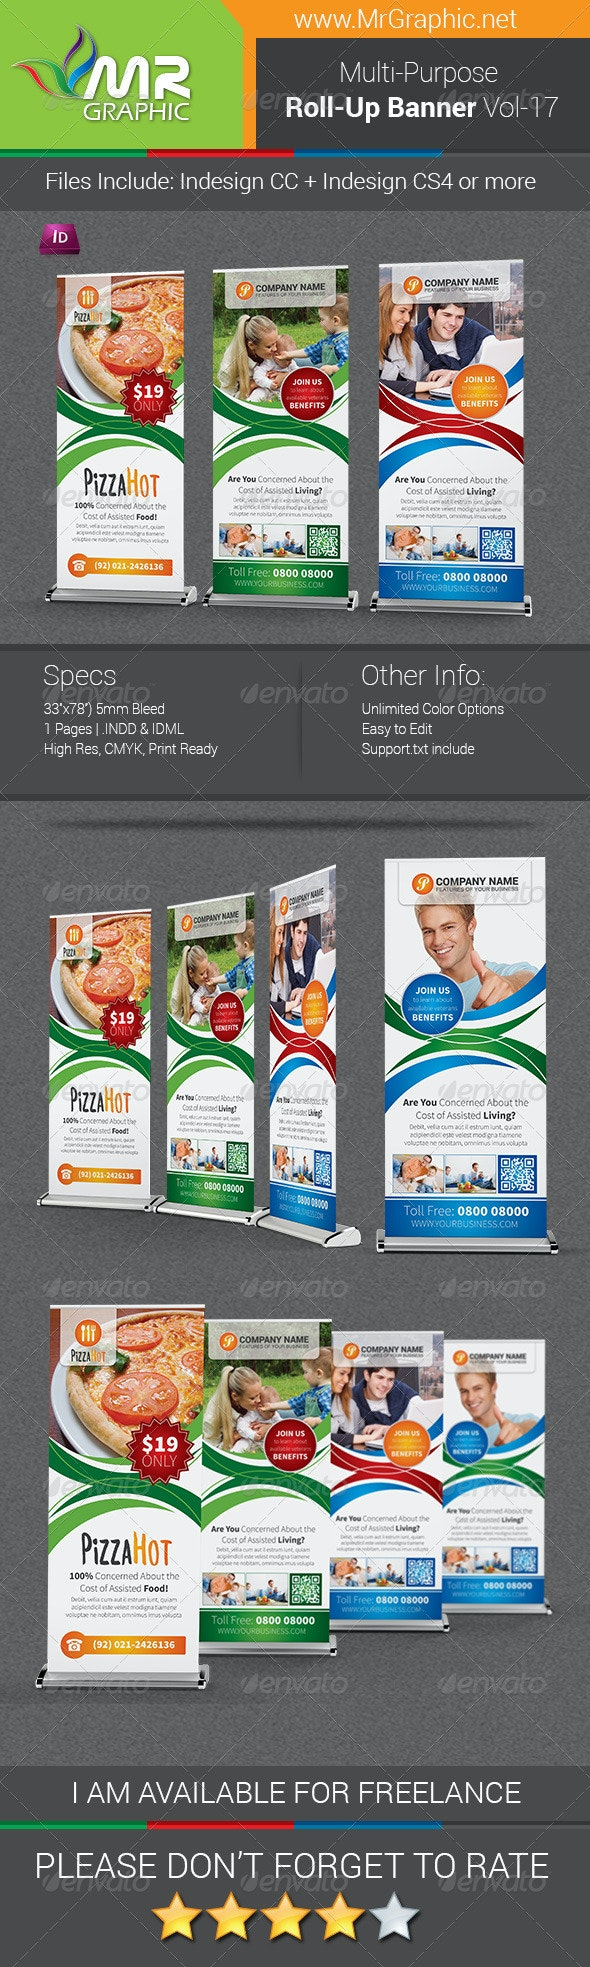 Multipurpose Business Roll-Up Banner Vol-17 - Signage Print Templates